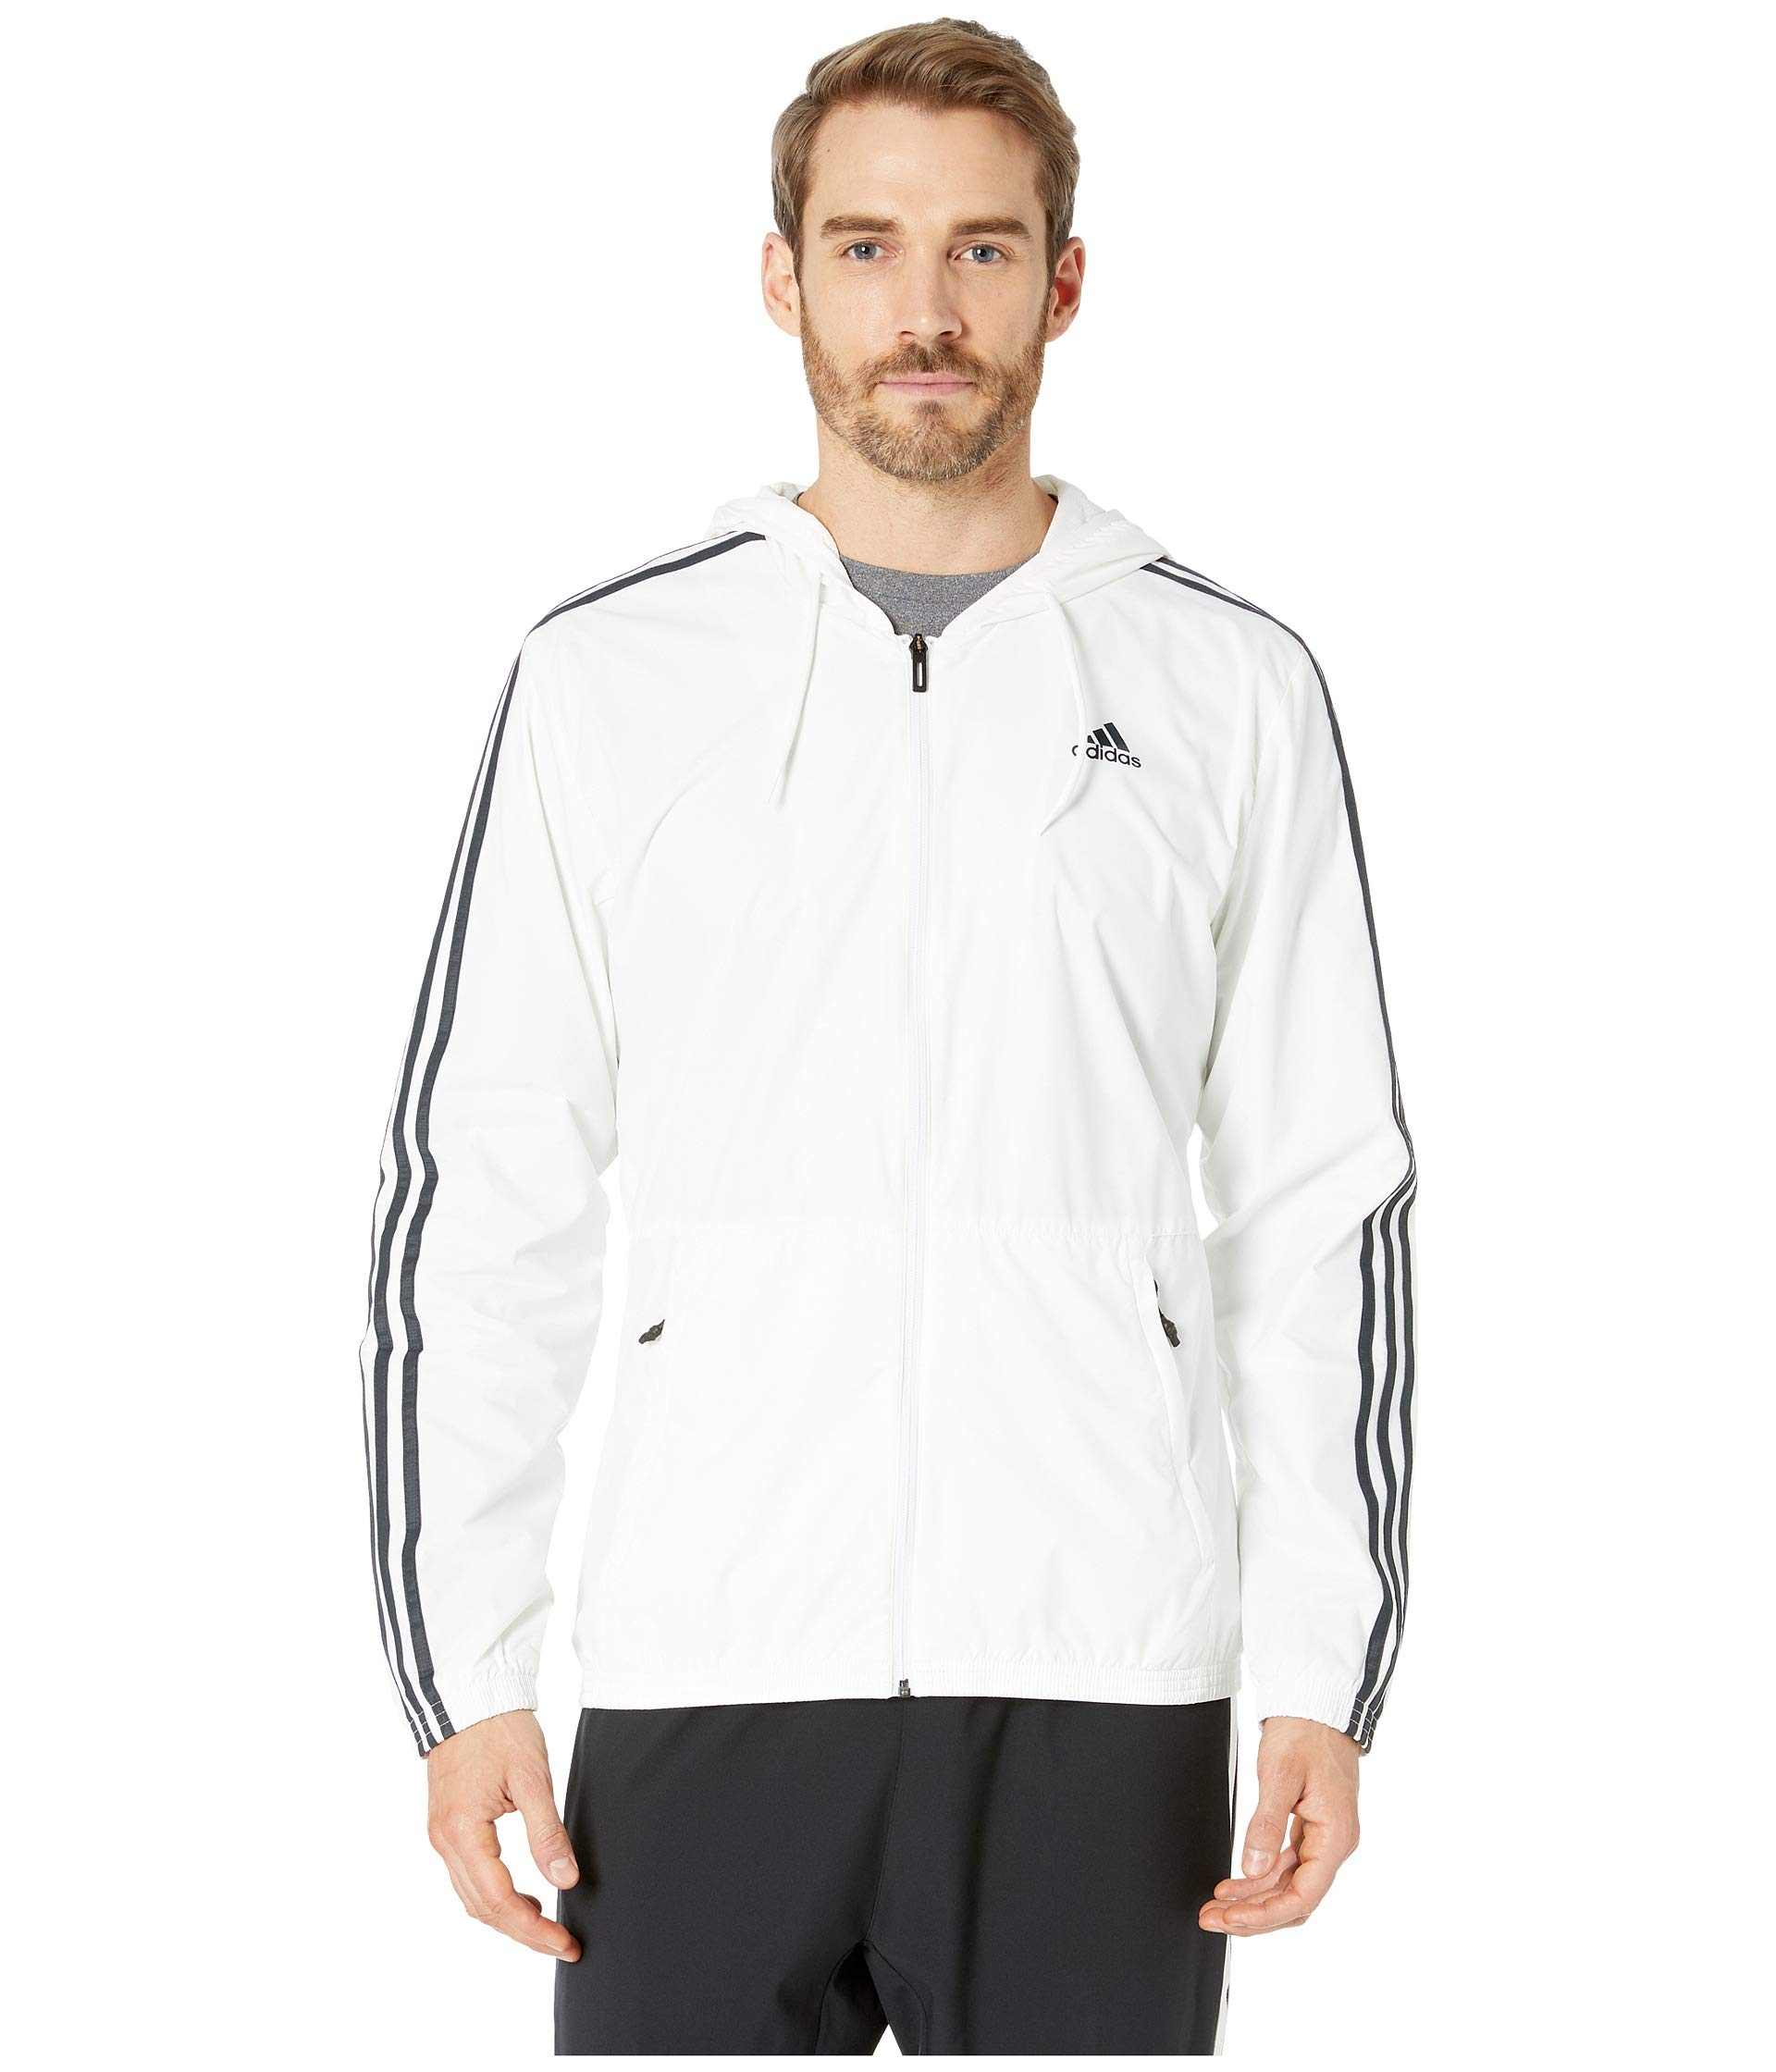 adidas Men's Essentials Wind Jacket (X-Large, White/Grey) by adidas